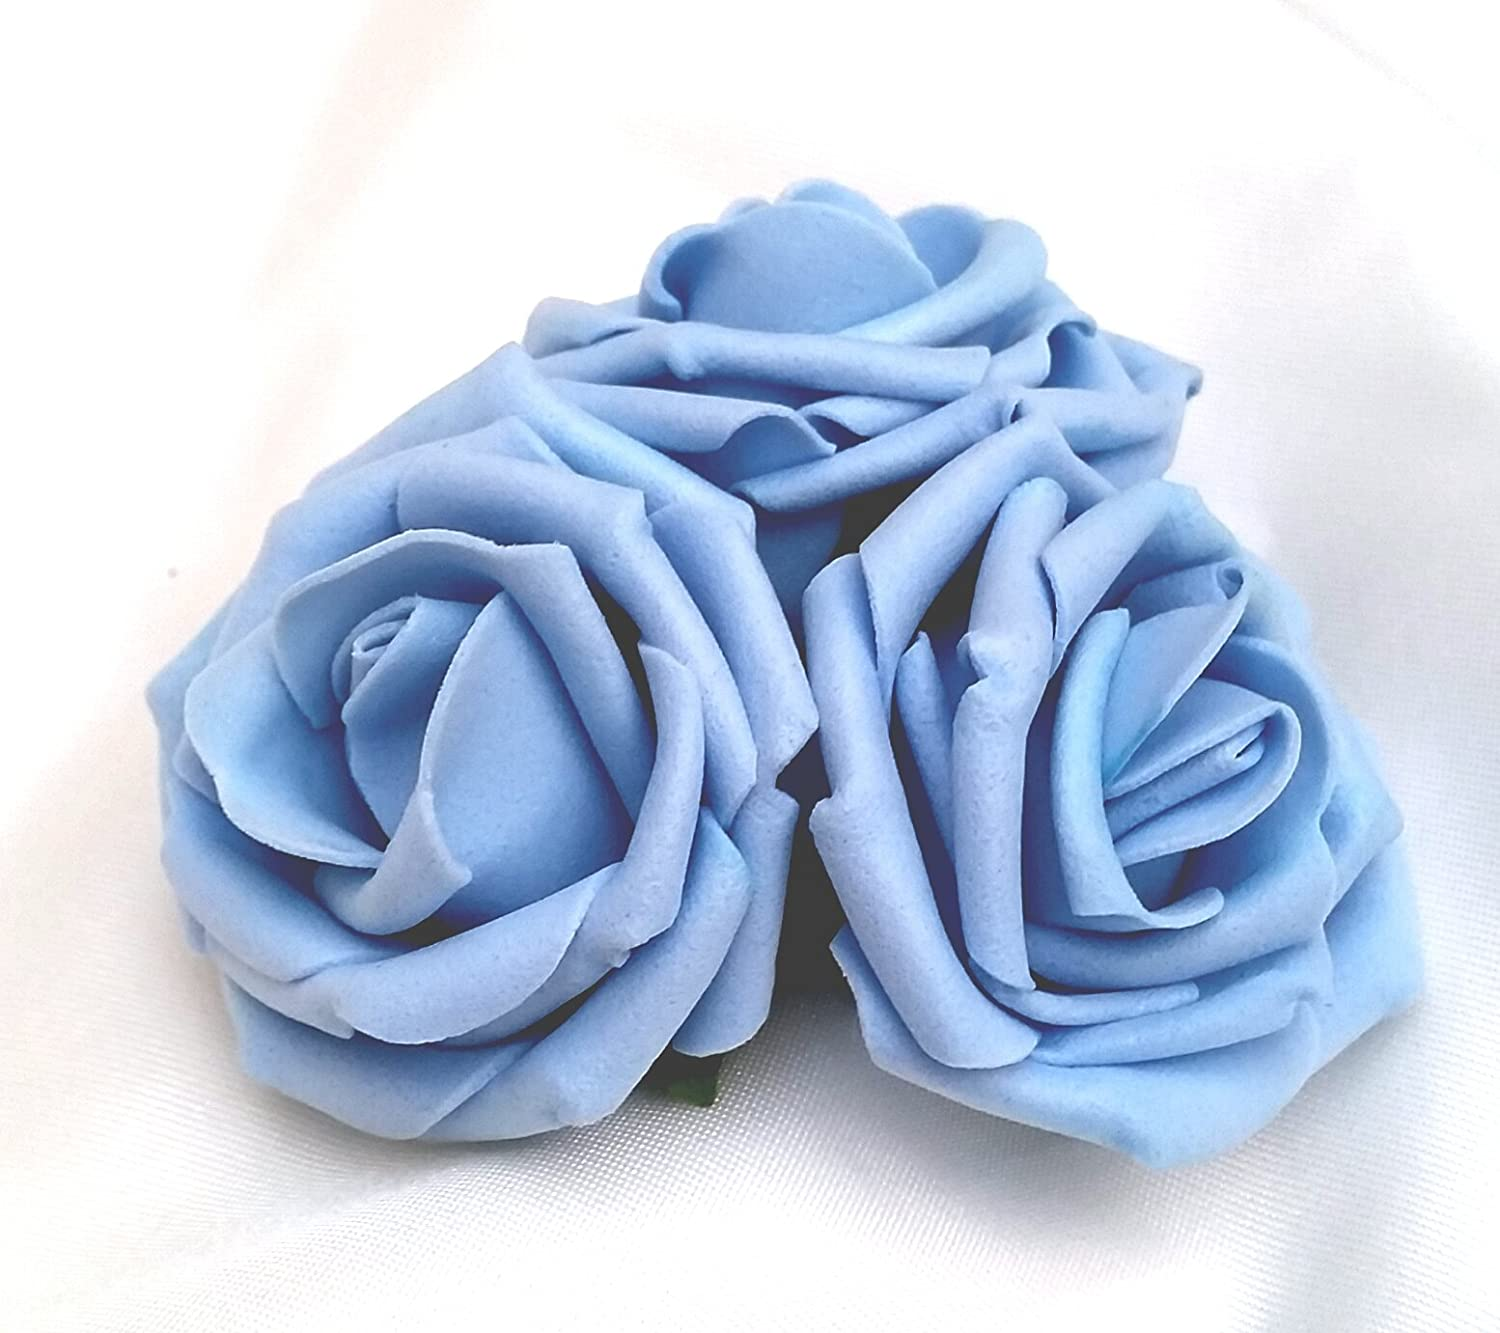 3 Pale Light Blue Roses Cluster Artificial Hair Flowers Corsage Clip Hand Made in Uk S1